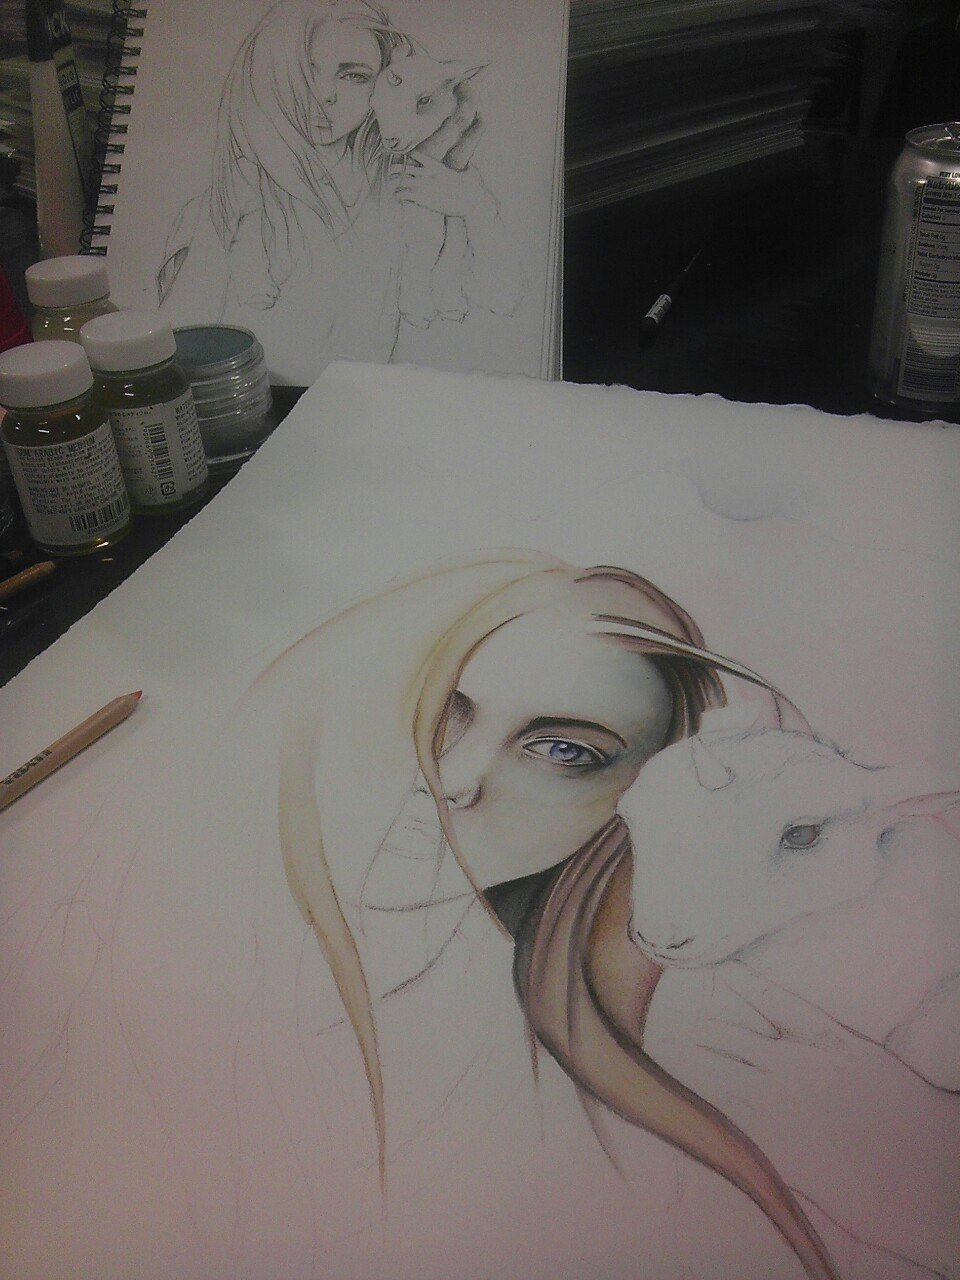 I started a new painting at the studio today. Dedicated to my furbabies and inspired by Clarice from Silence of the Lambs.